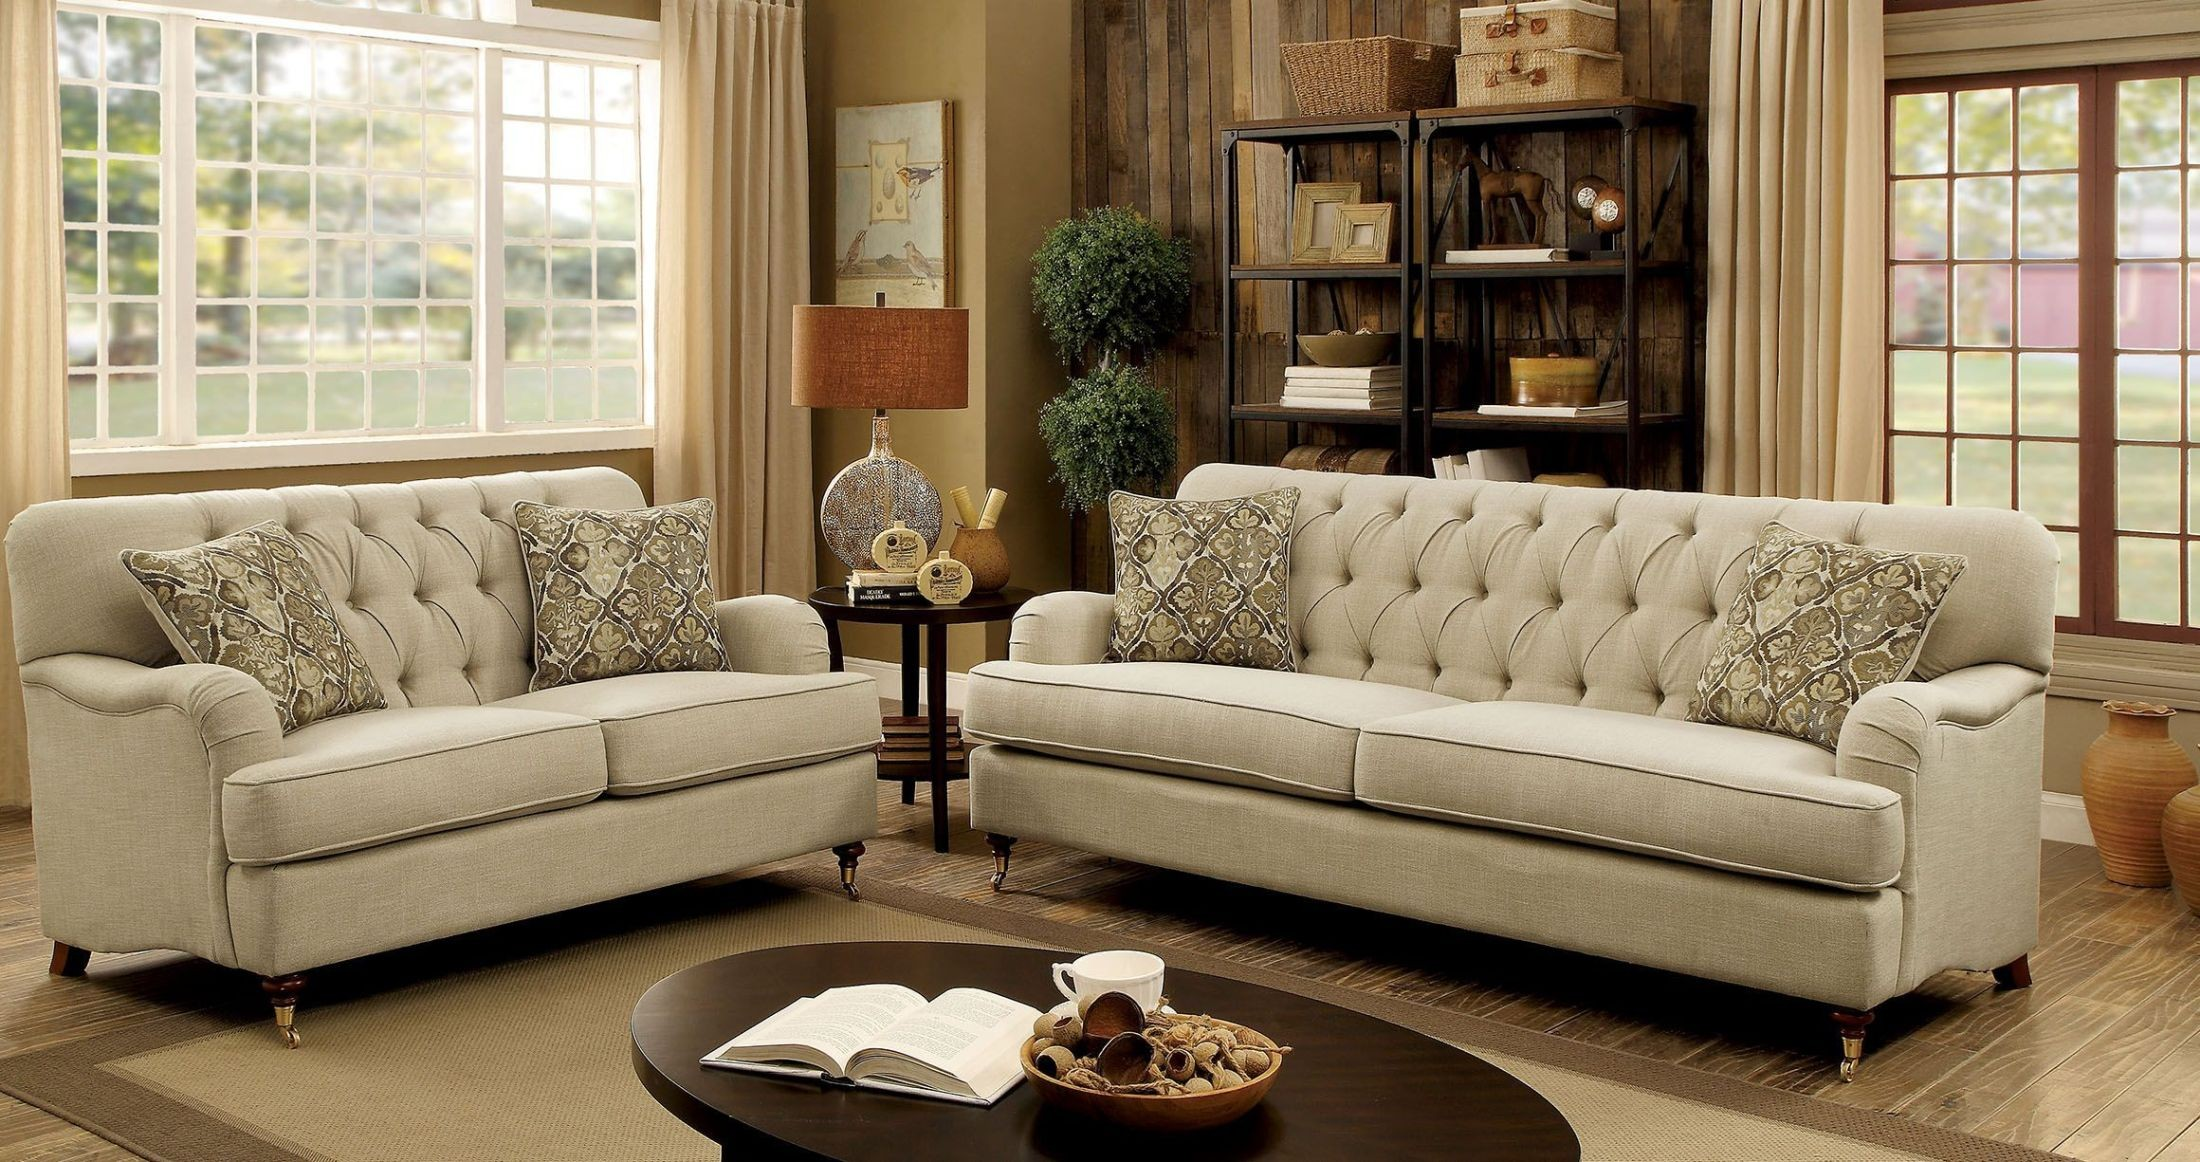 100 sofa beds townsville quality sofa beds everyday use lea